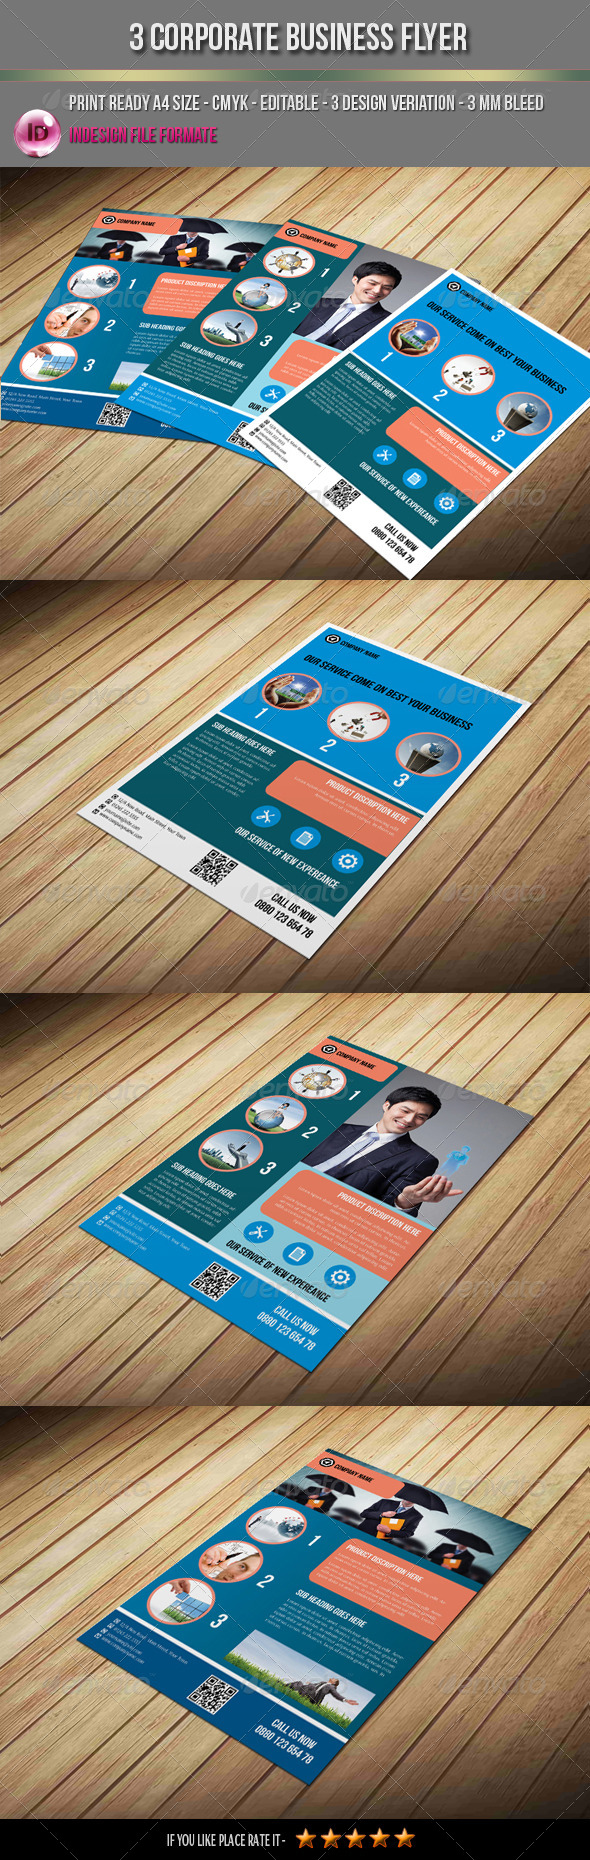 GraphicRiver 3 Corporate Business Flyer 7610934